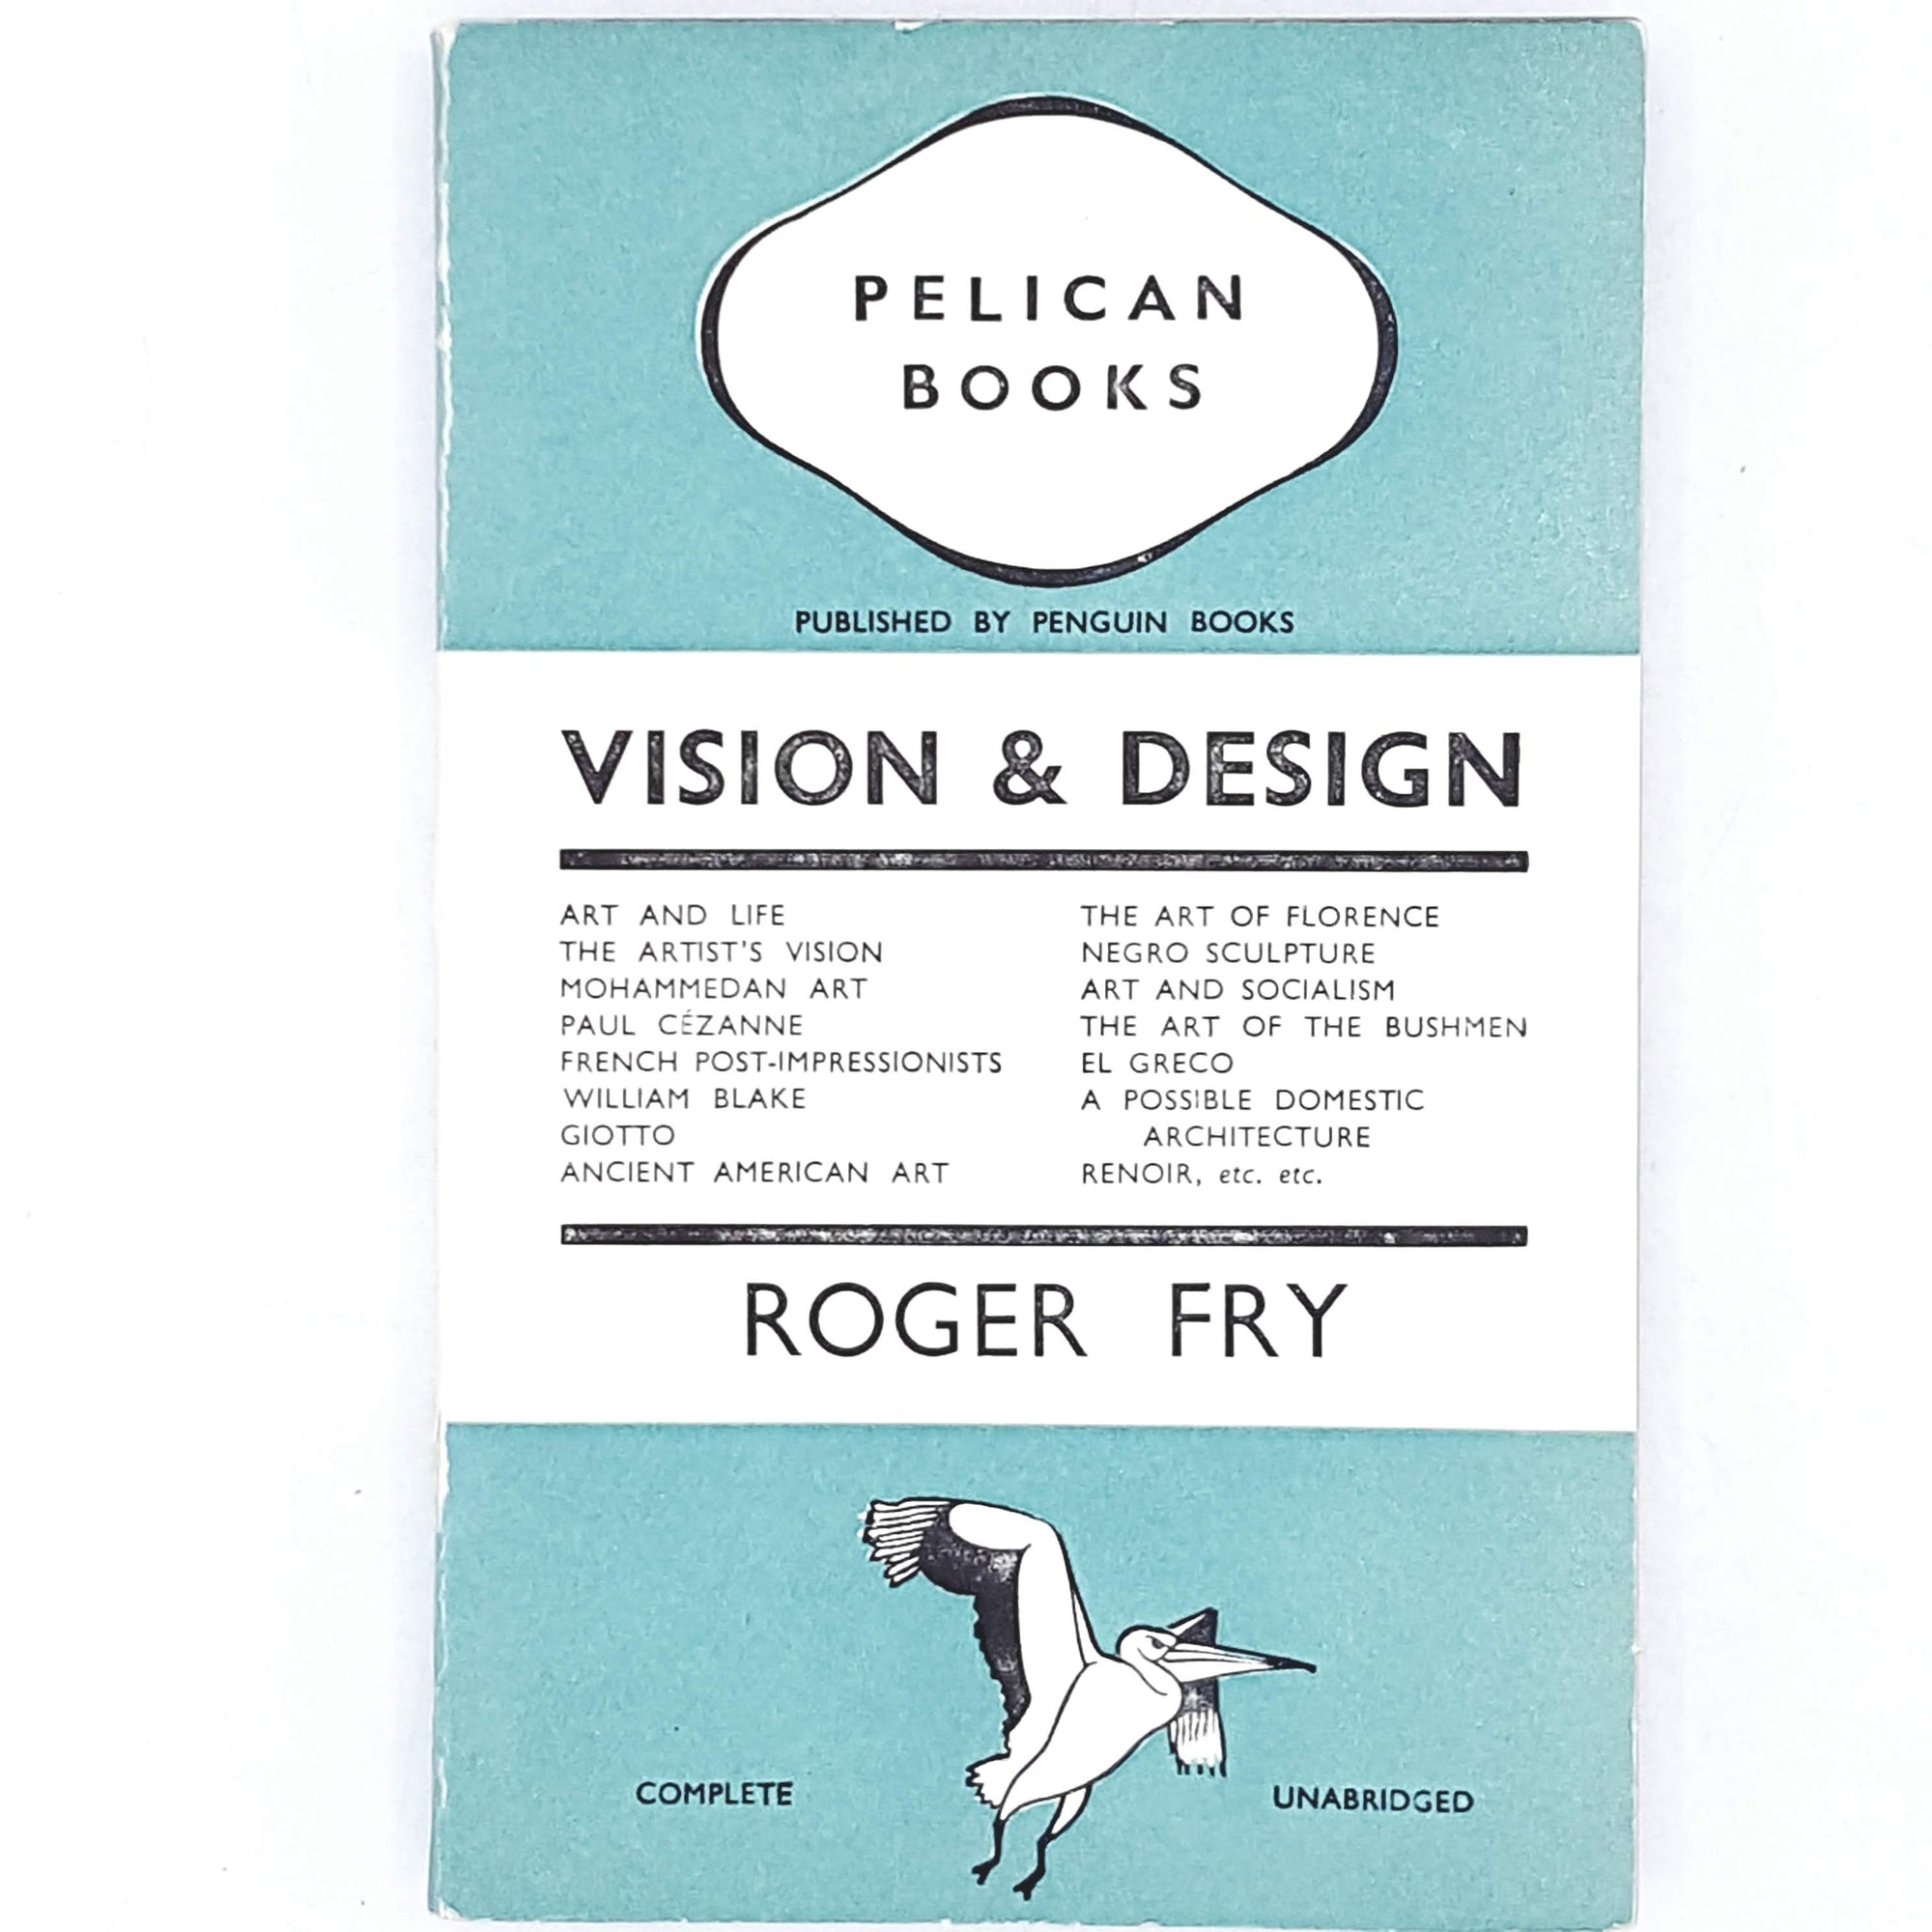 First Edition Pelican Vision & Design by Roger Fry 1937